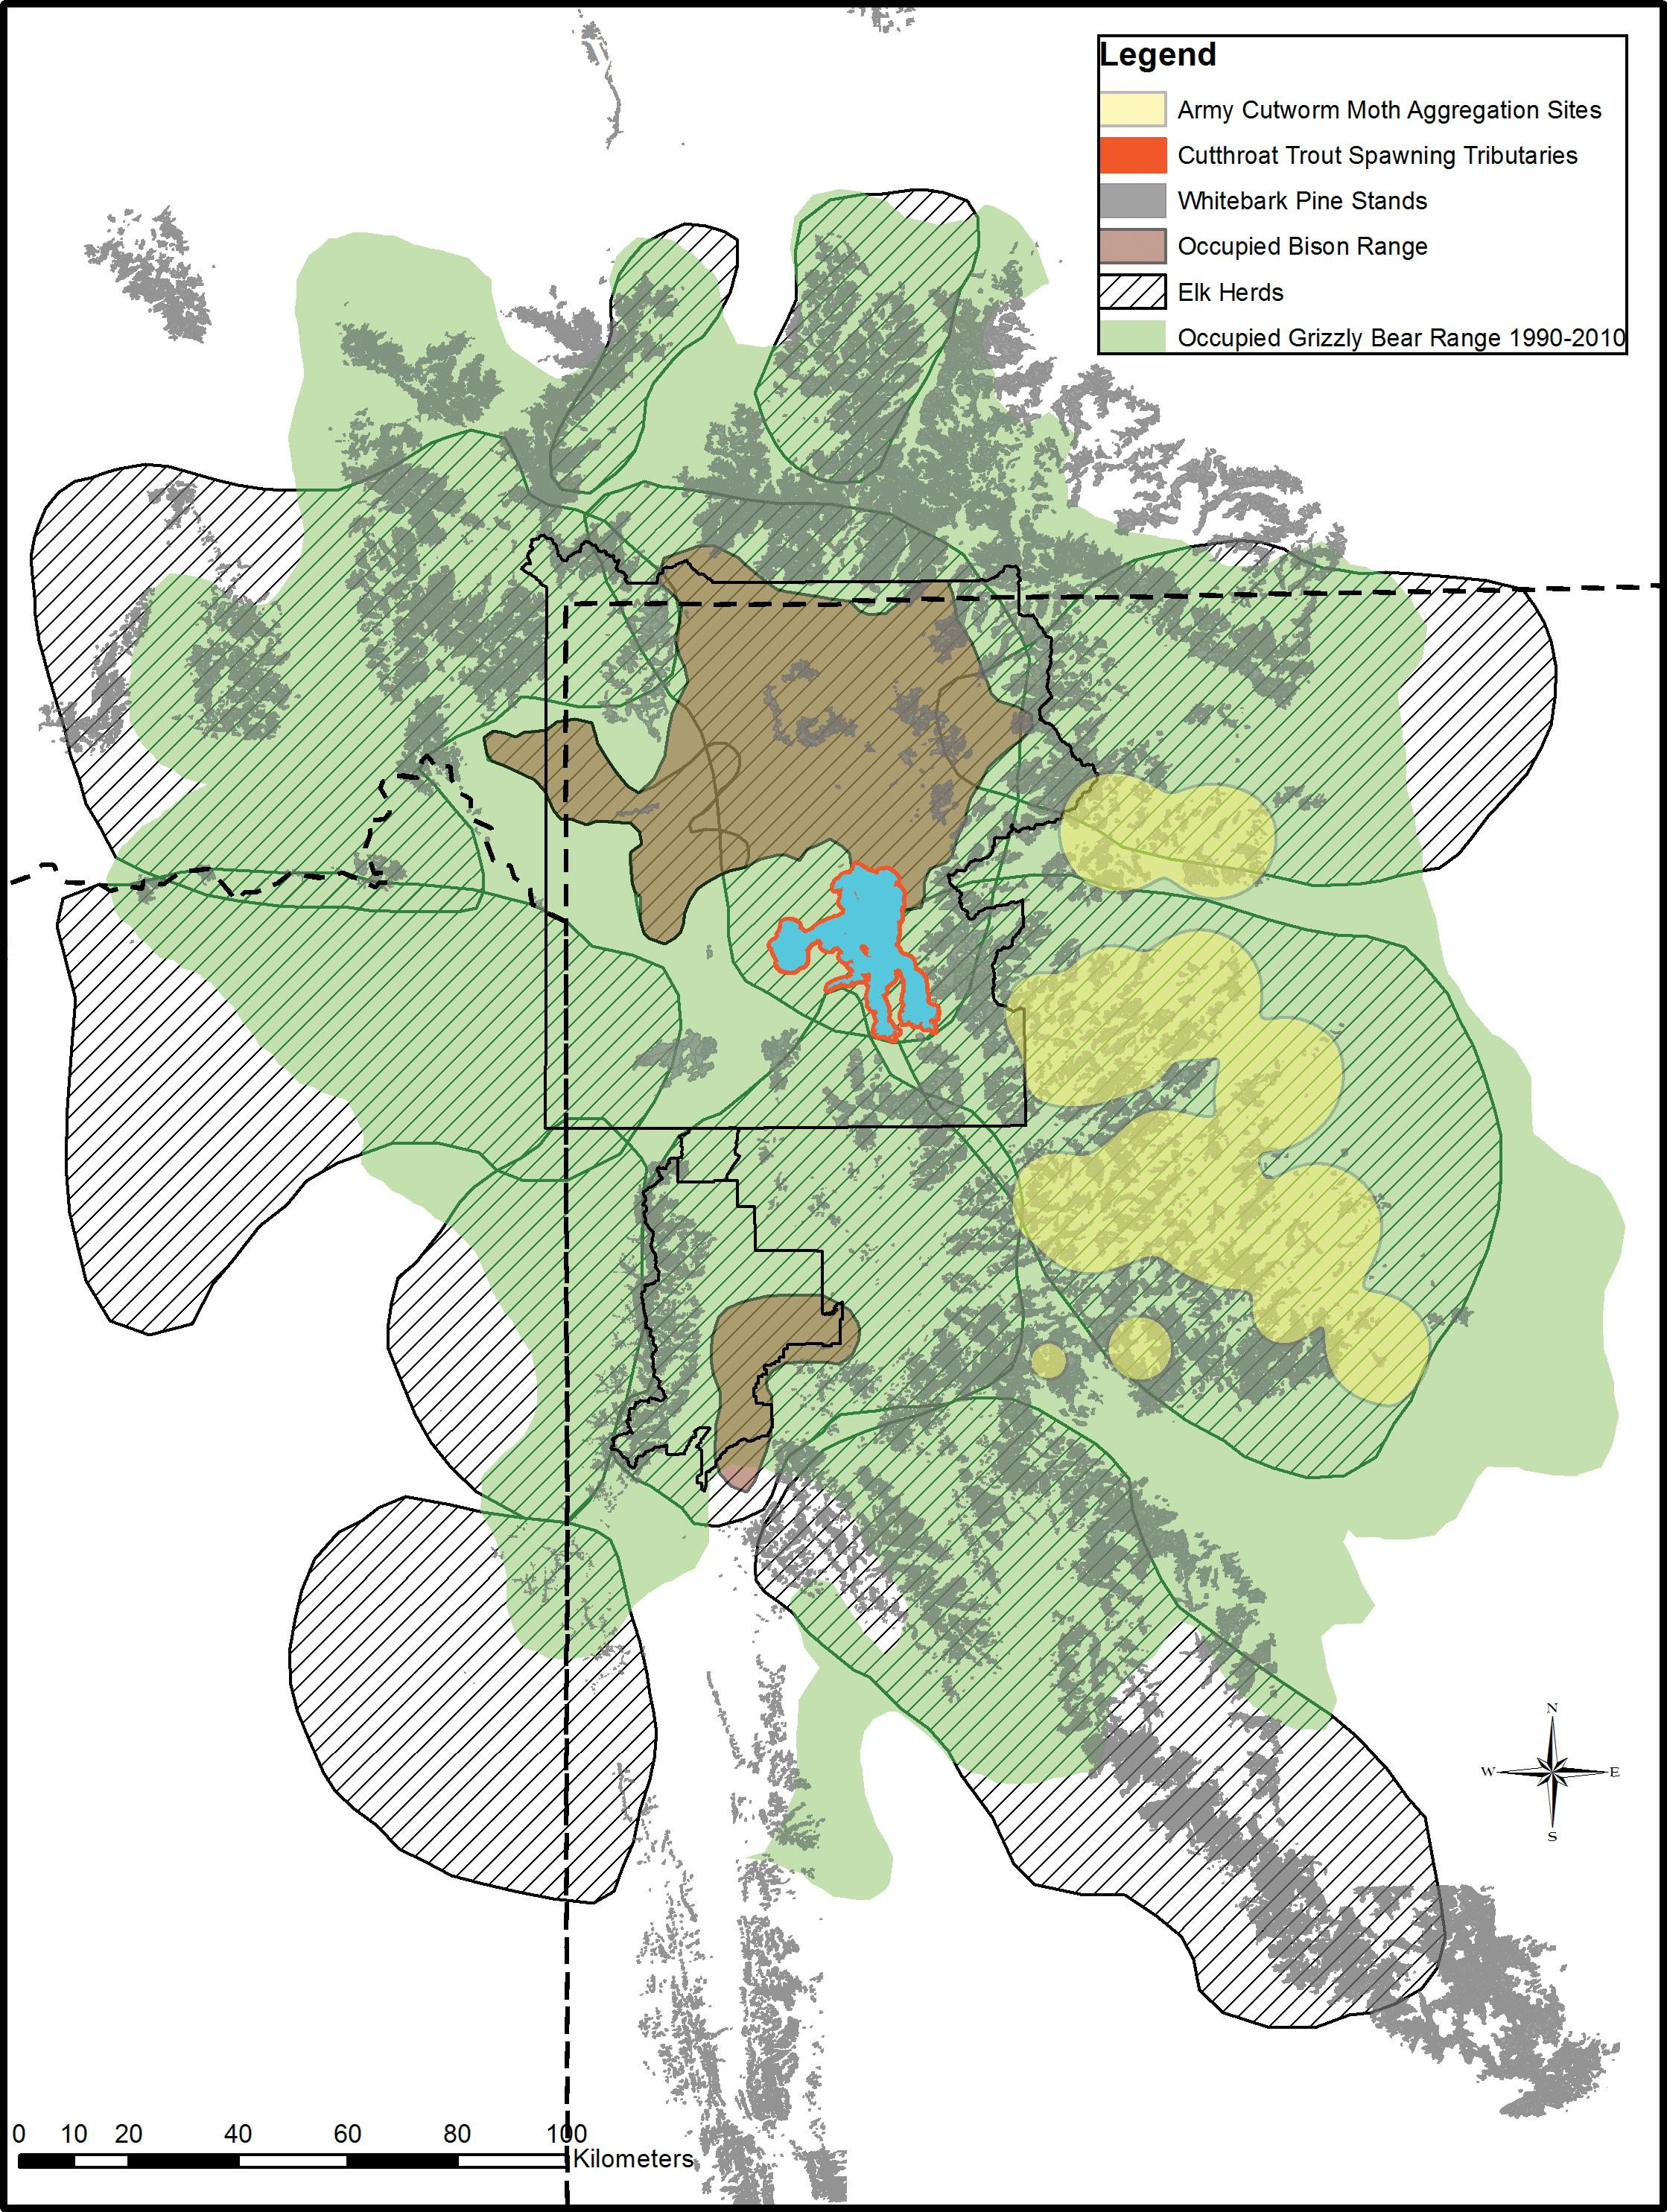 Dietary breadth of grizzly bears in the Greater Yellowstone Ecosystem